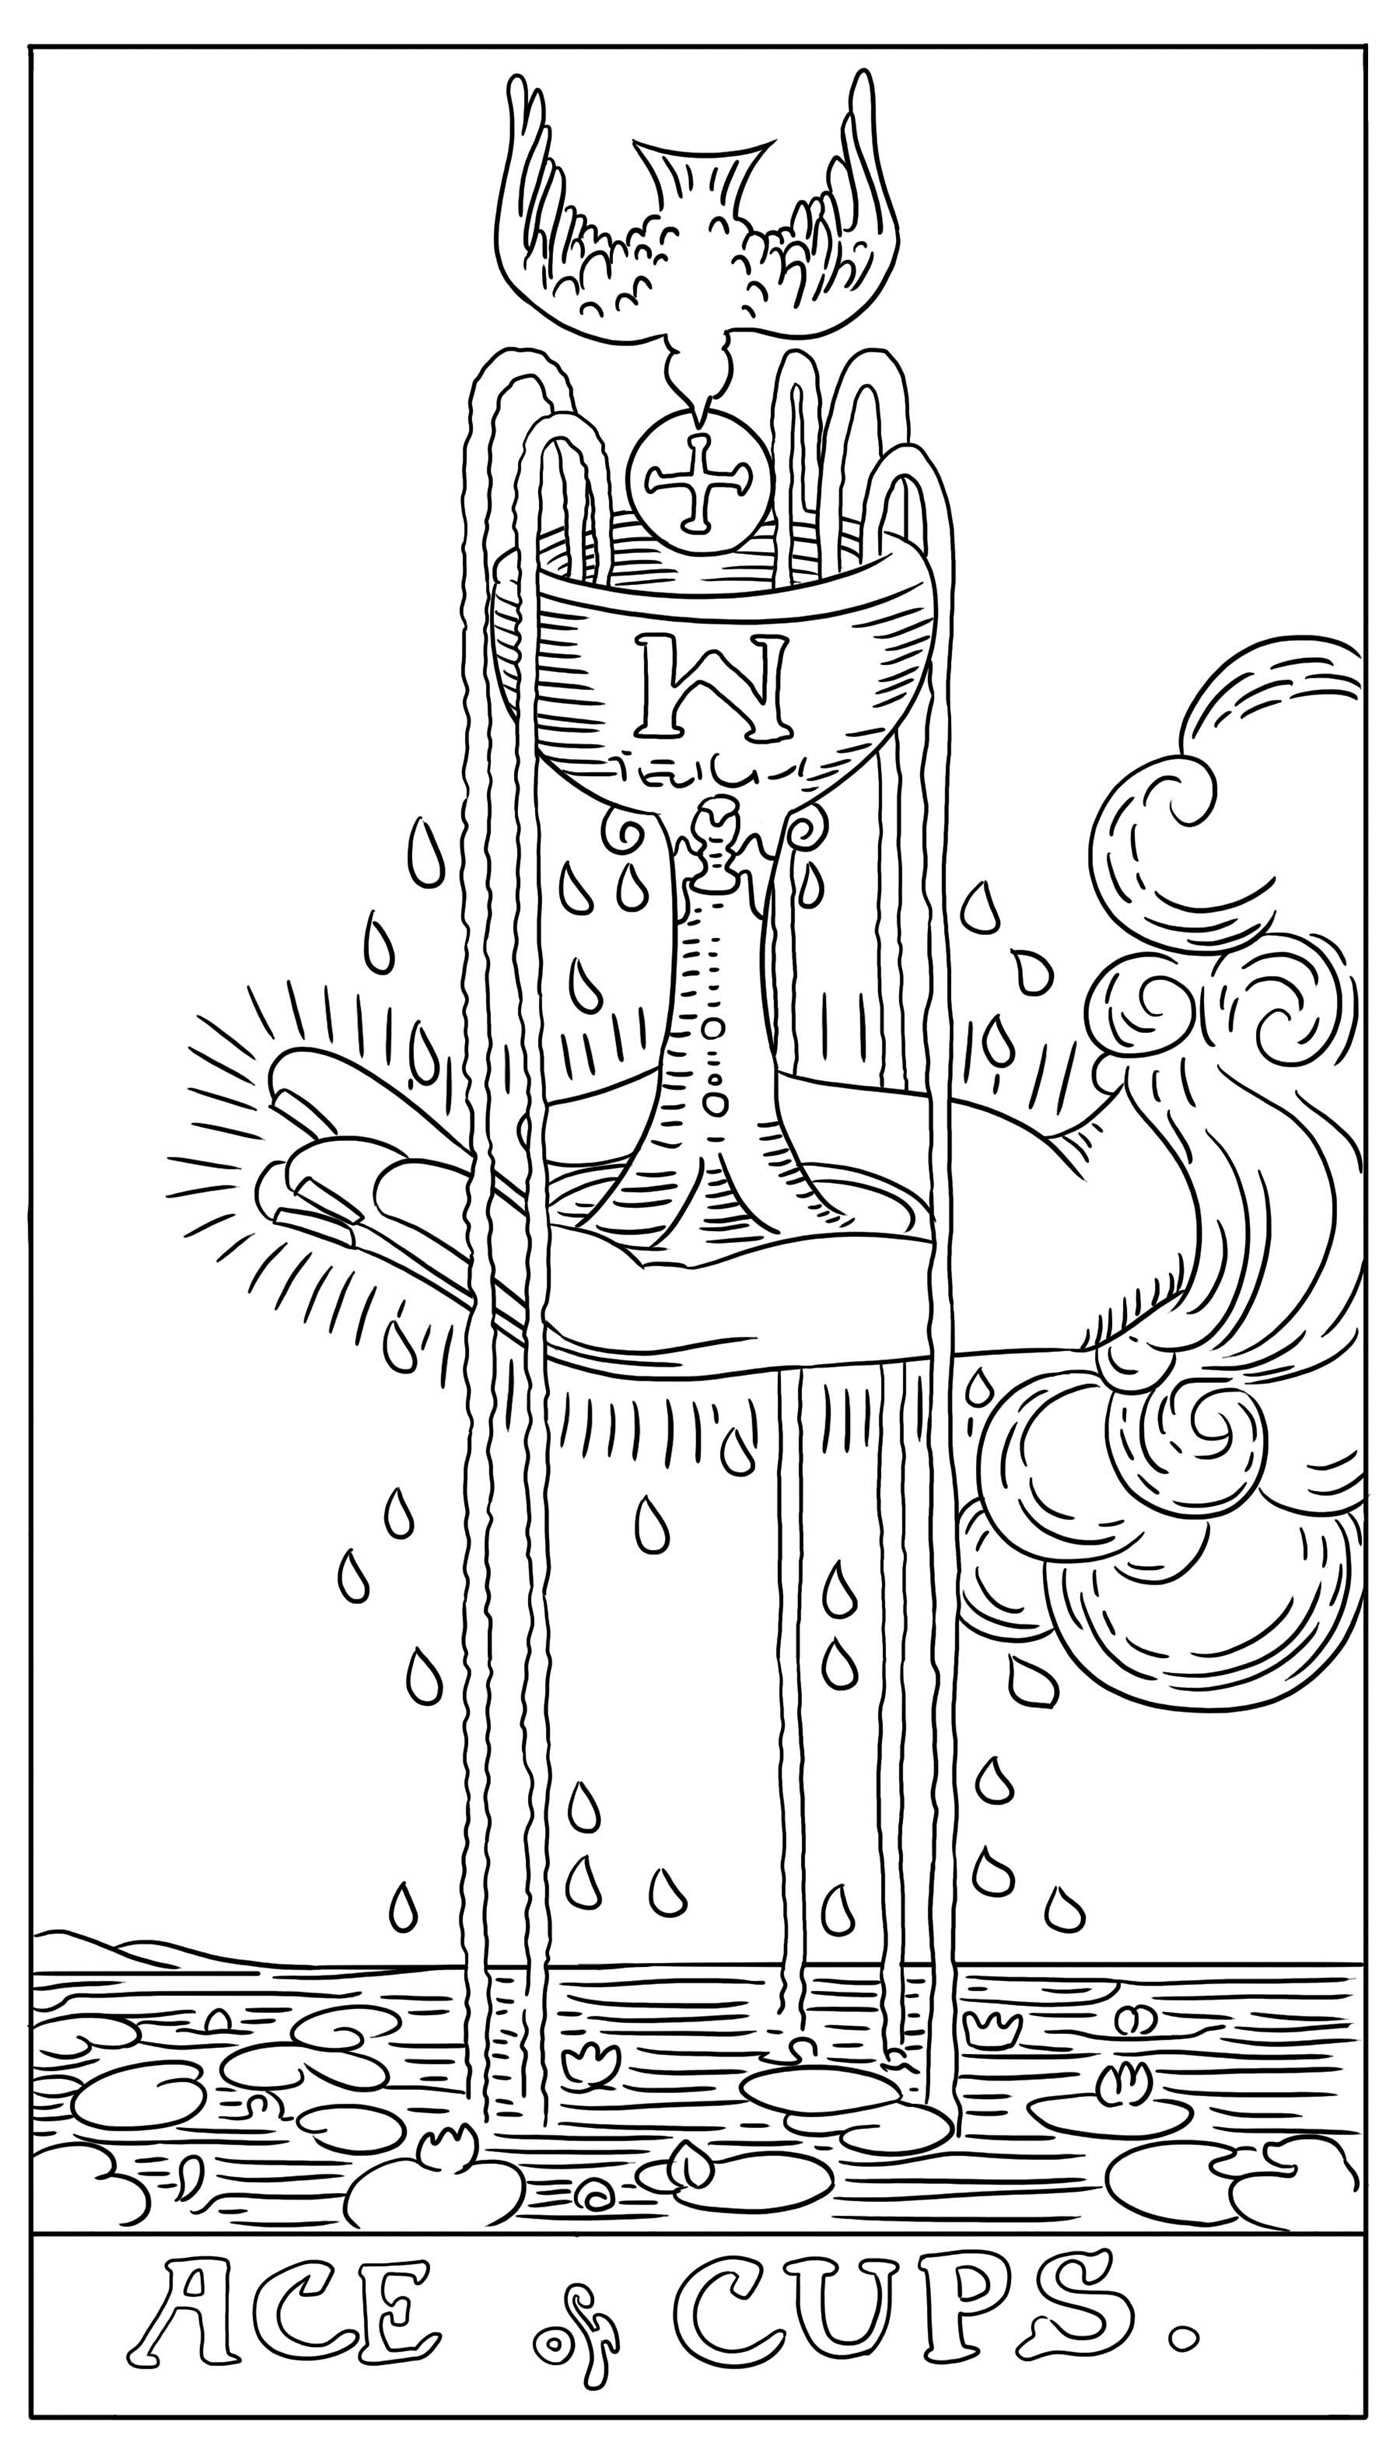 The Tarot Card Adult Coloring Book 9781682612644in04